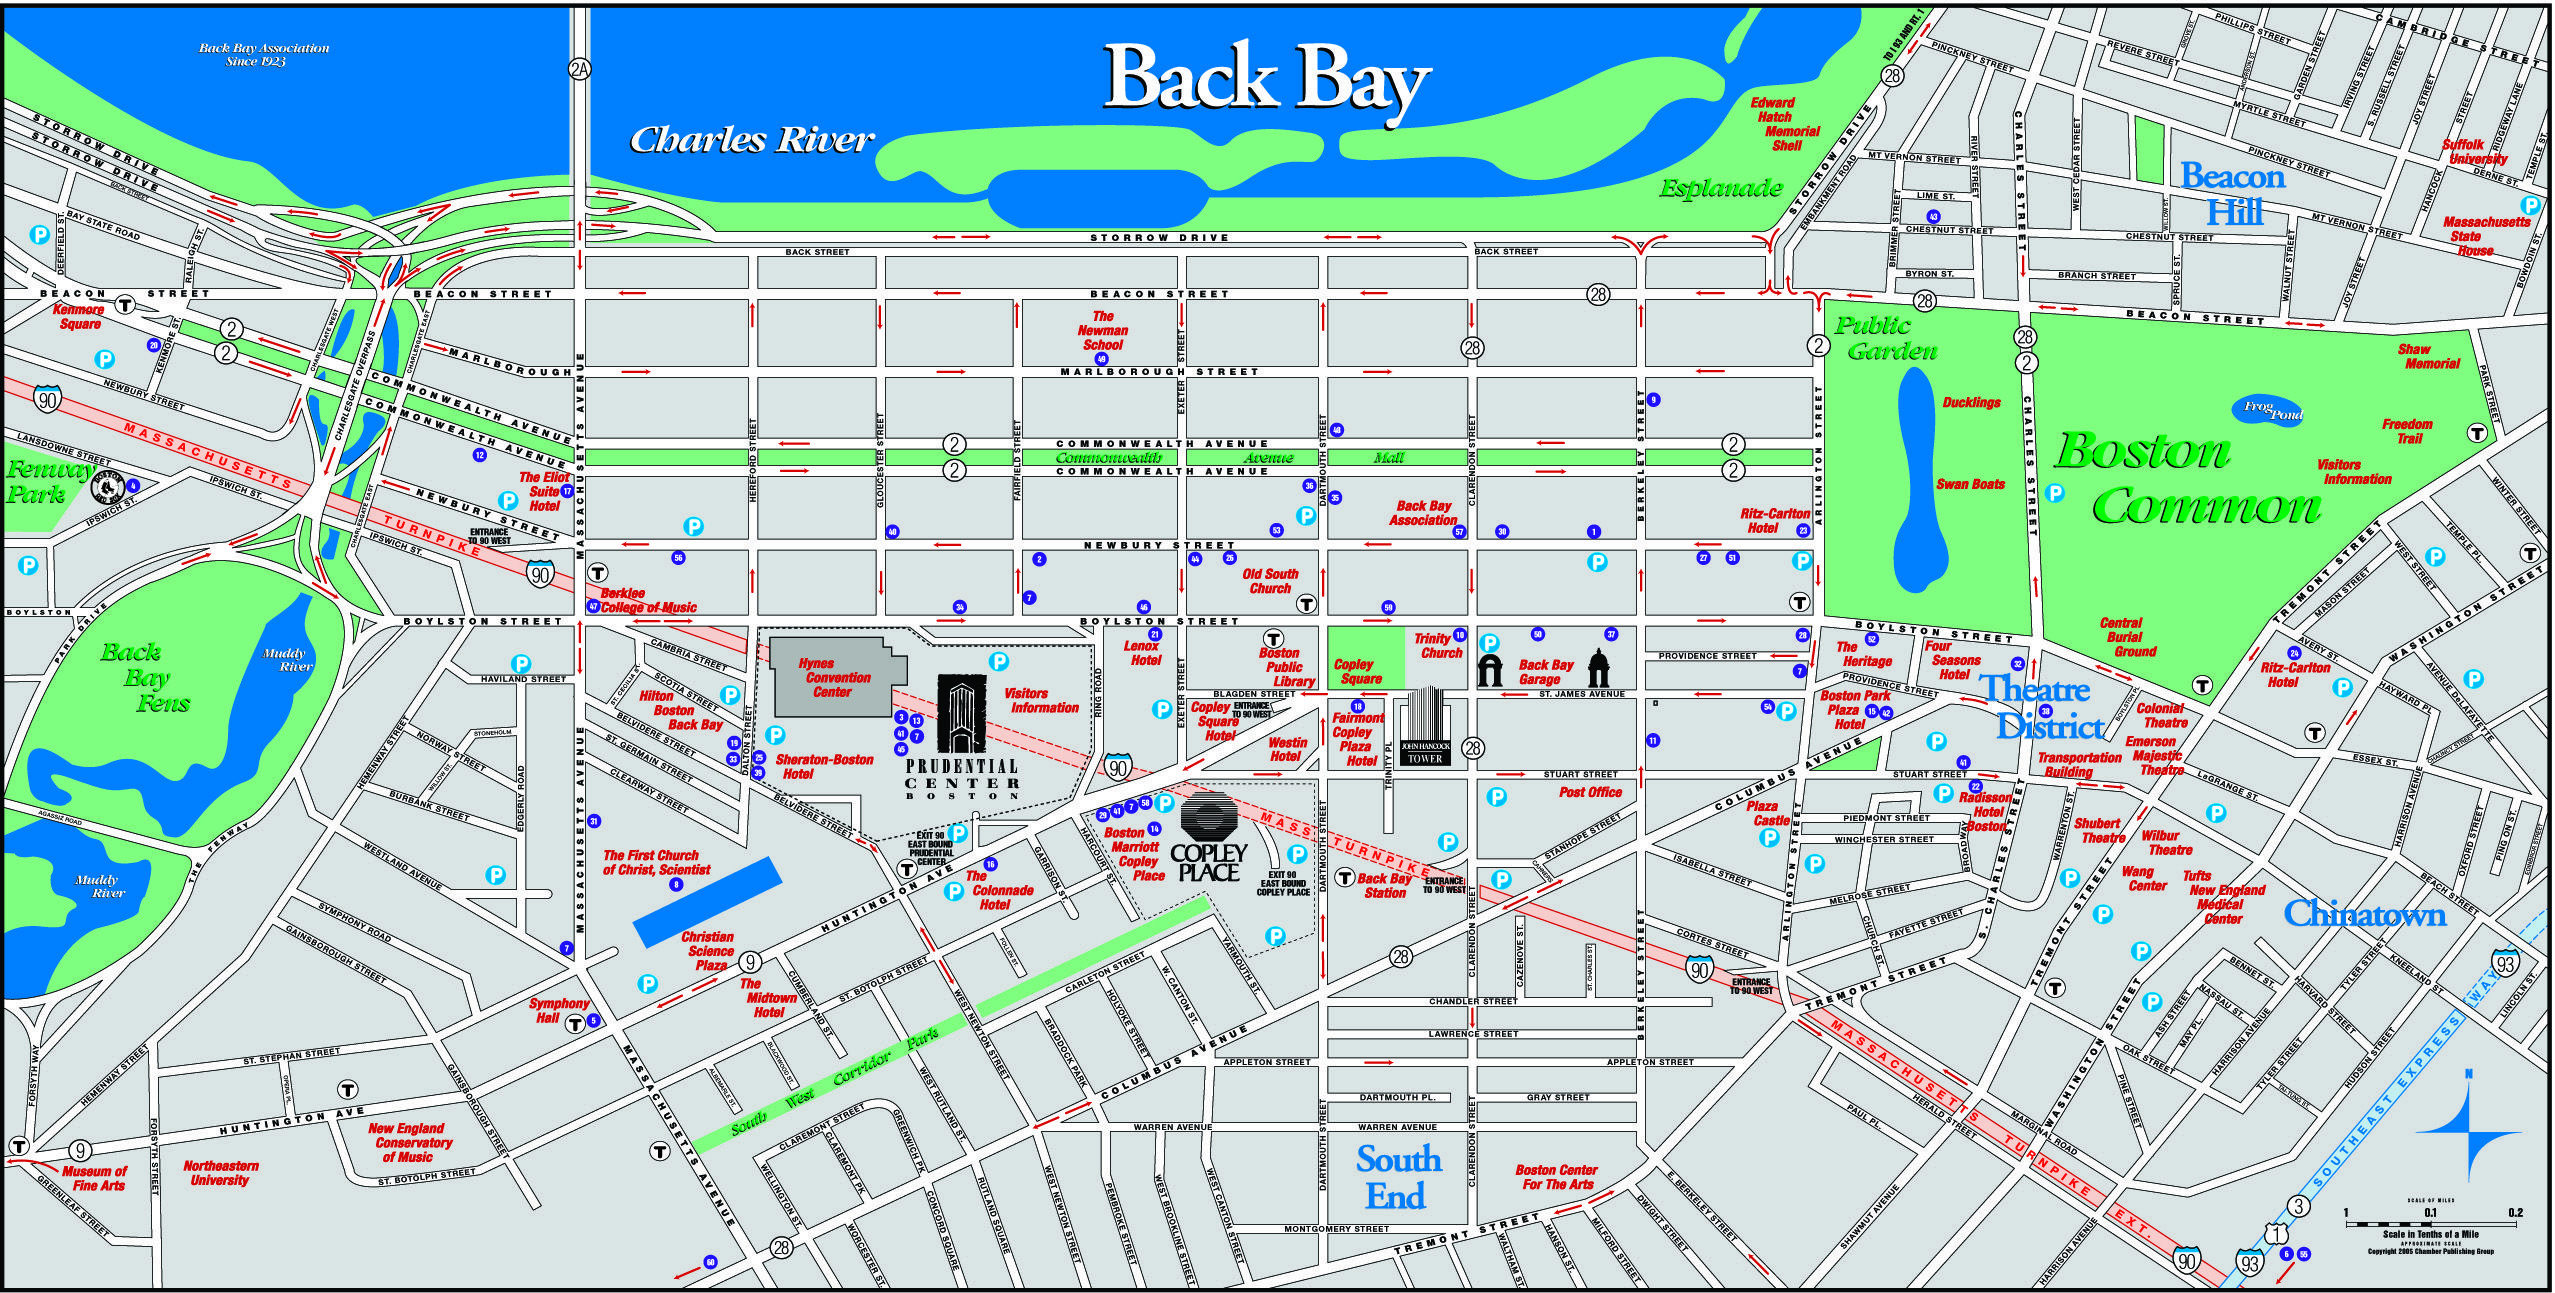 Back Bay Boston Map Back Bay | Boston map, Back bay, Boston common